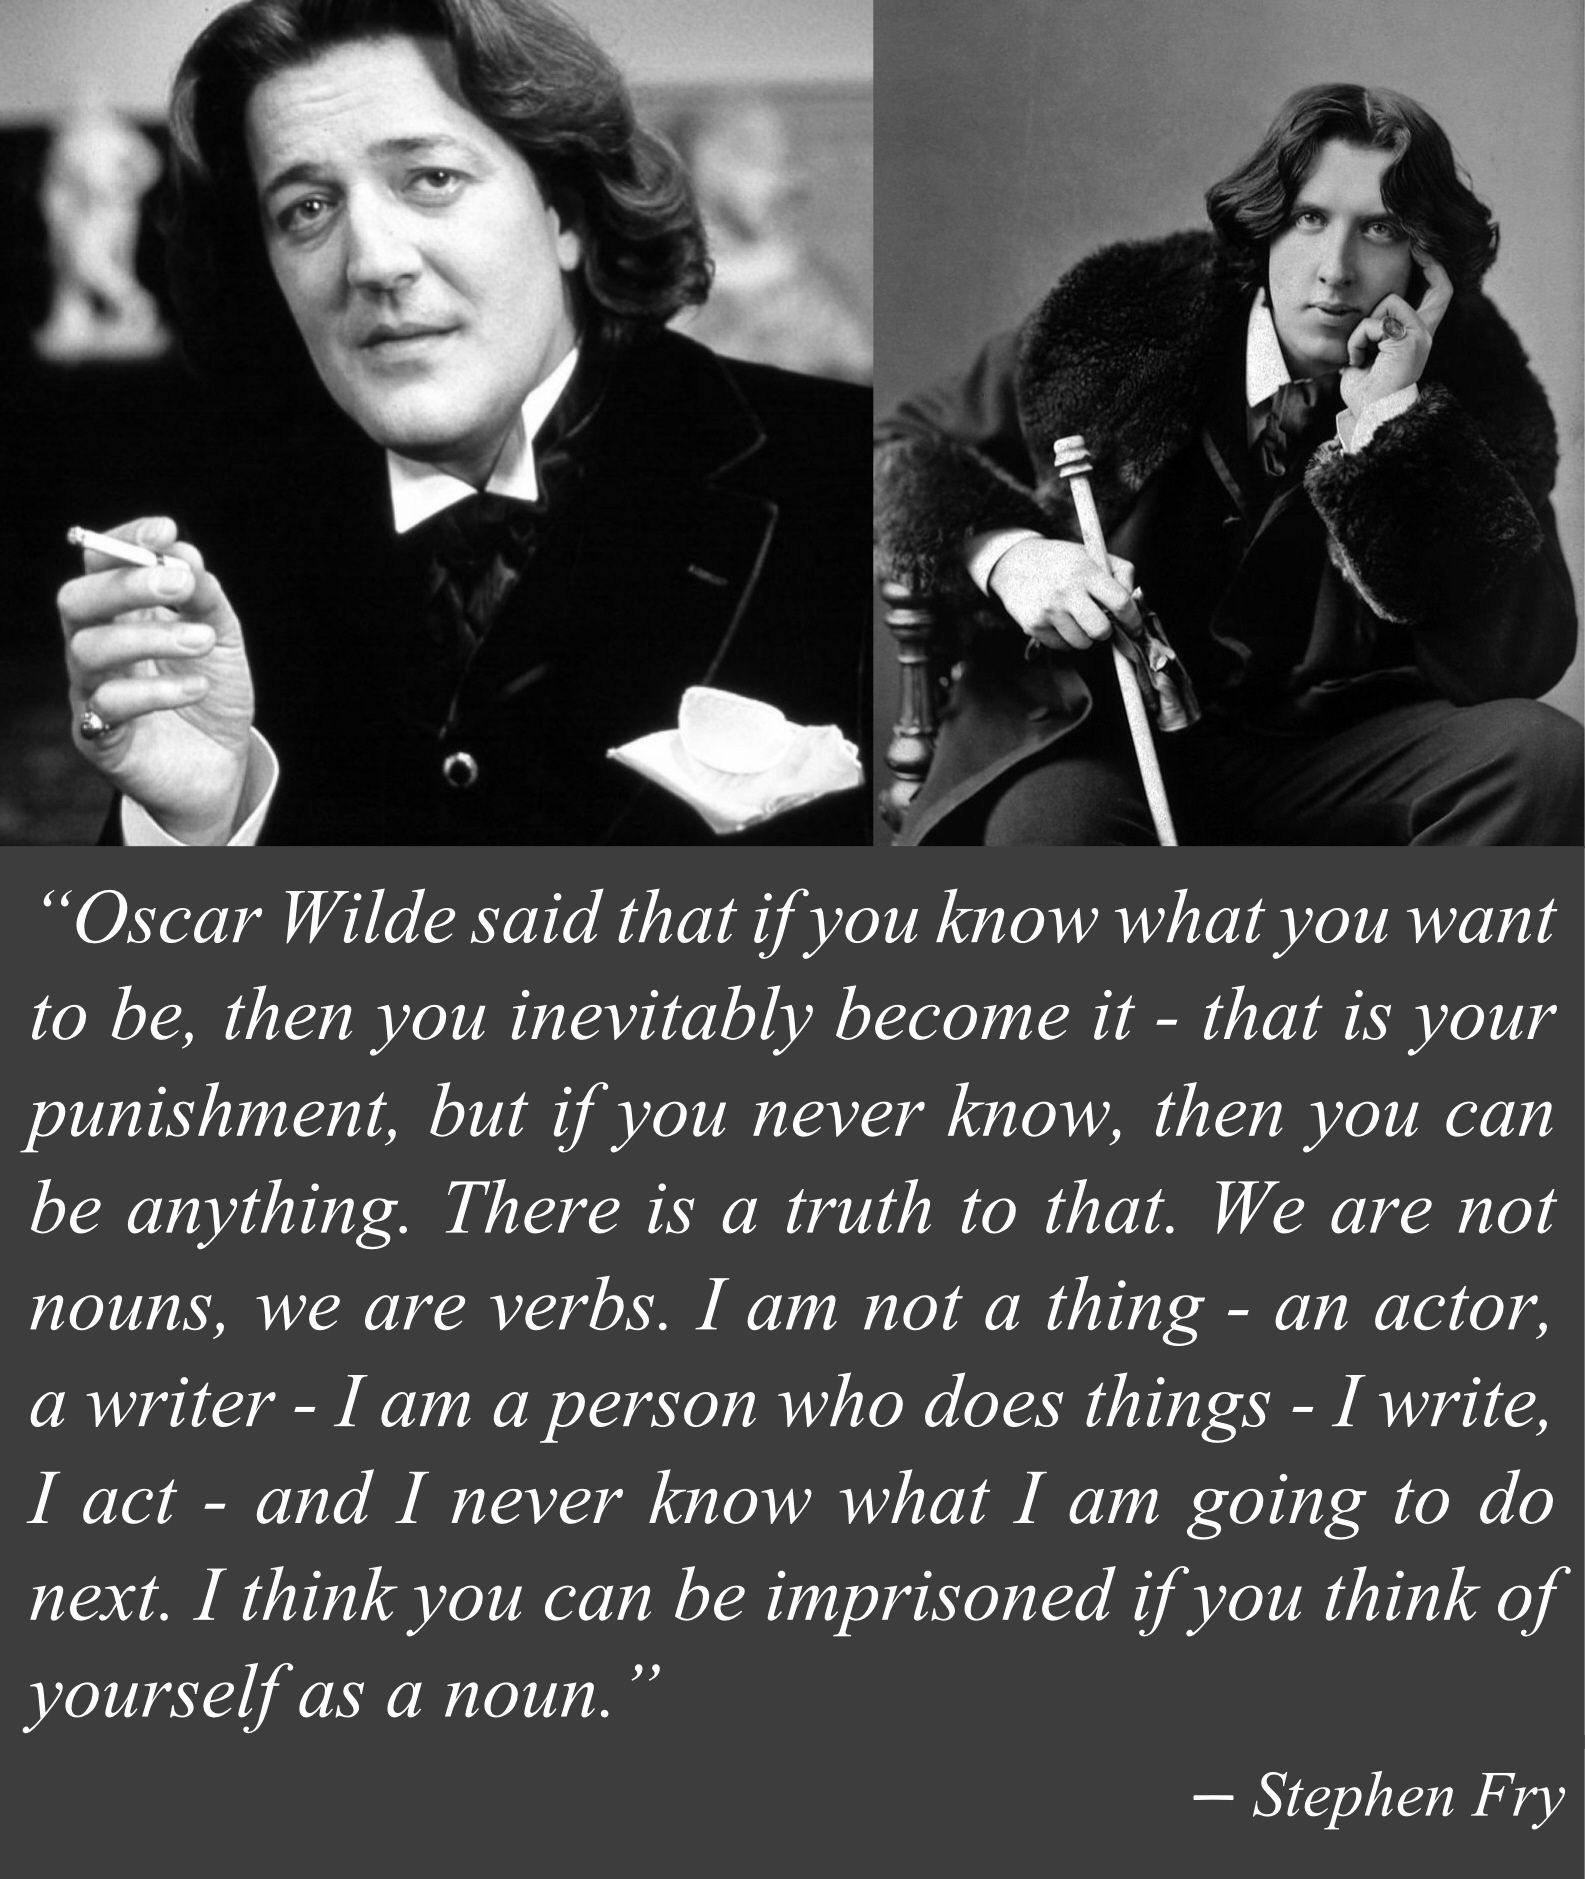 stephen fry on oscar wilde identity nouns and verbs image via stephen fry on oscar wilde identity nouns and verbs image via